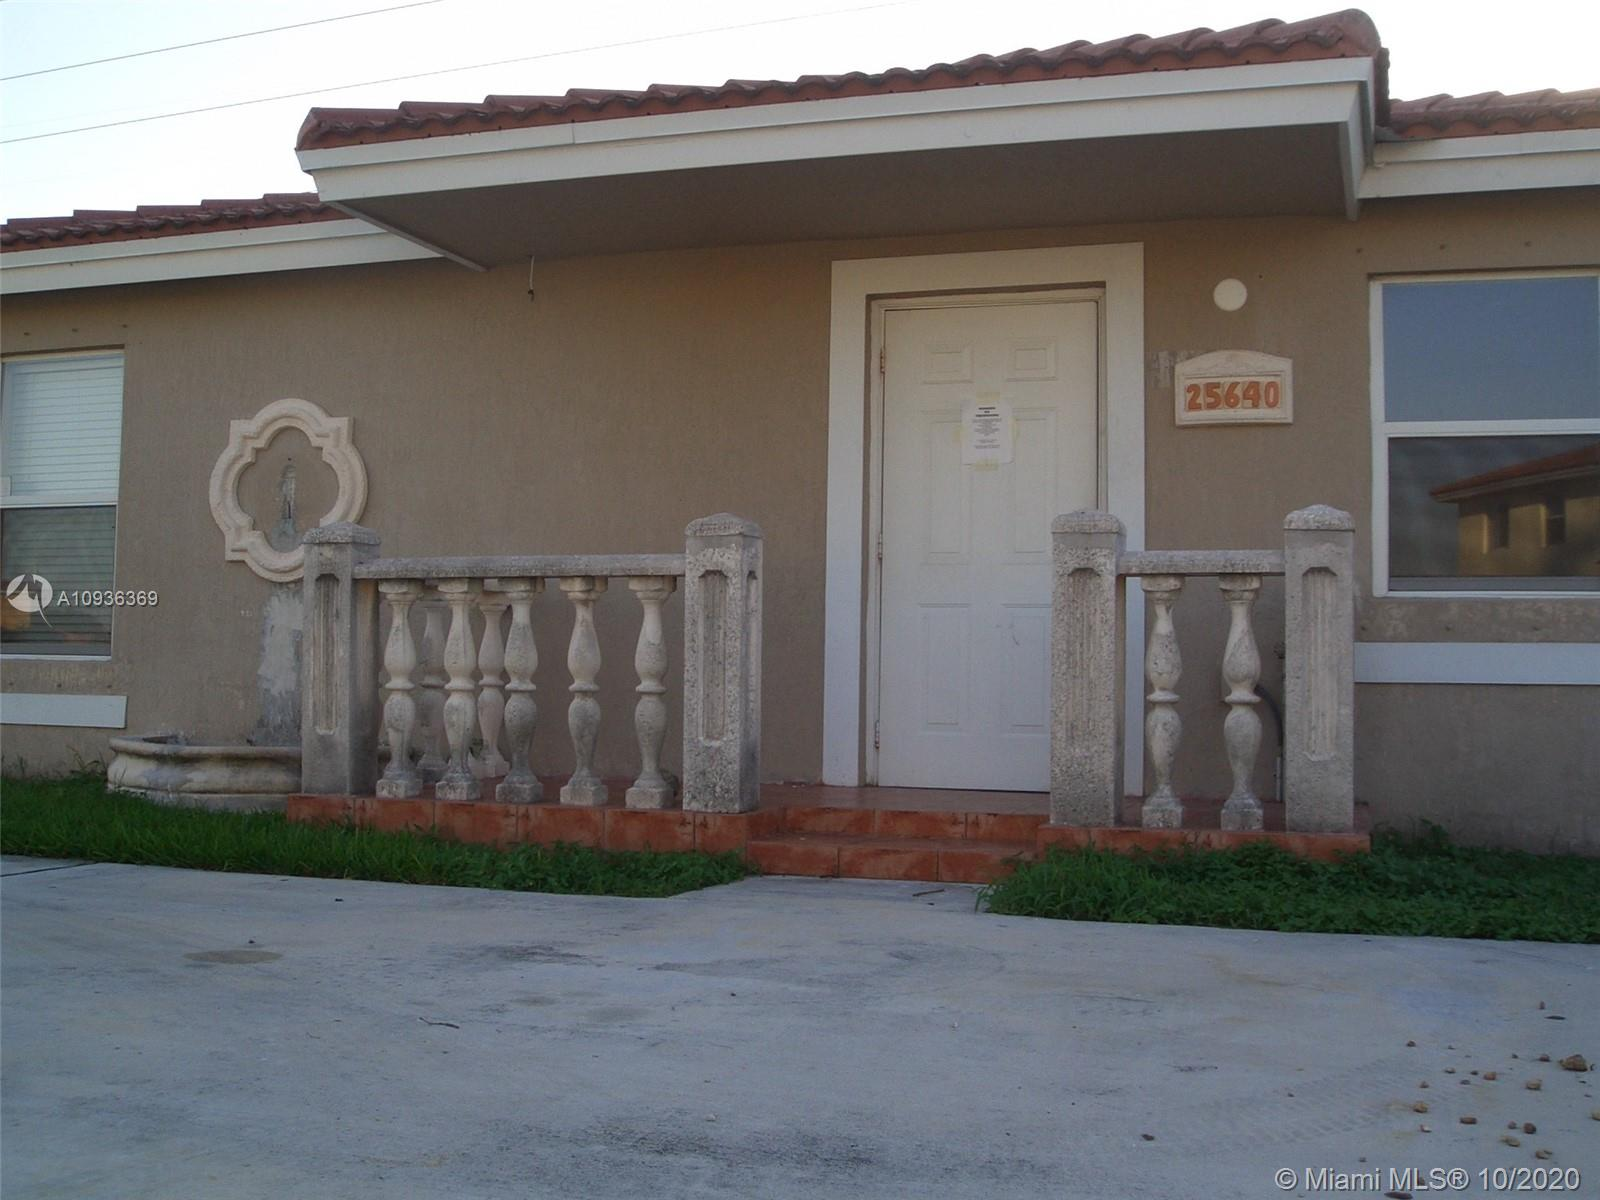 25640 Sw 128th Ct Property Photo